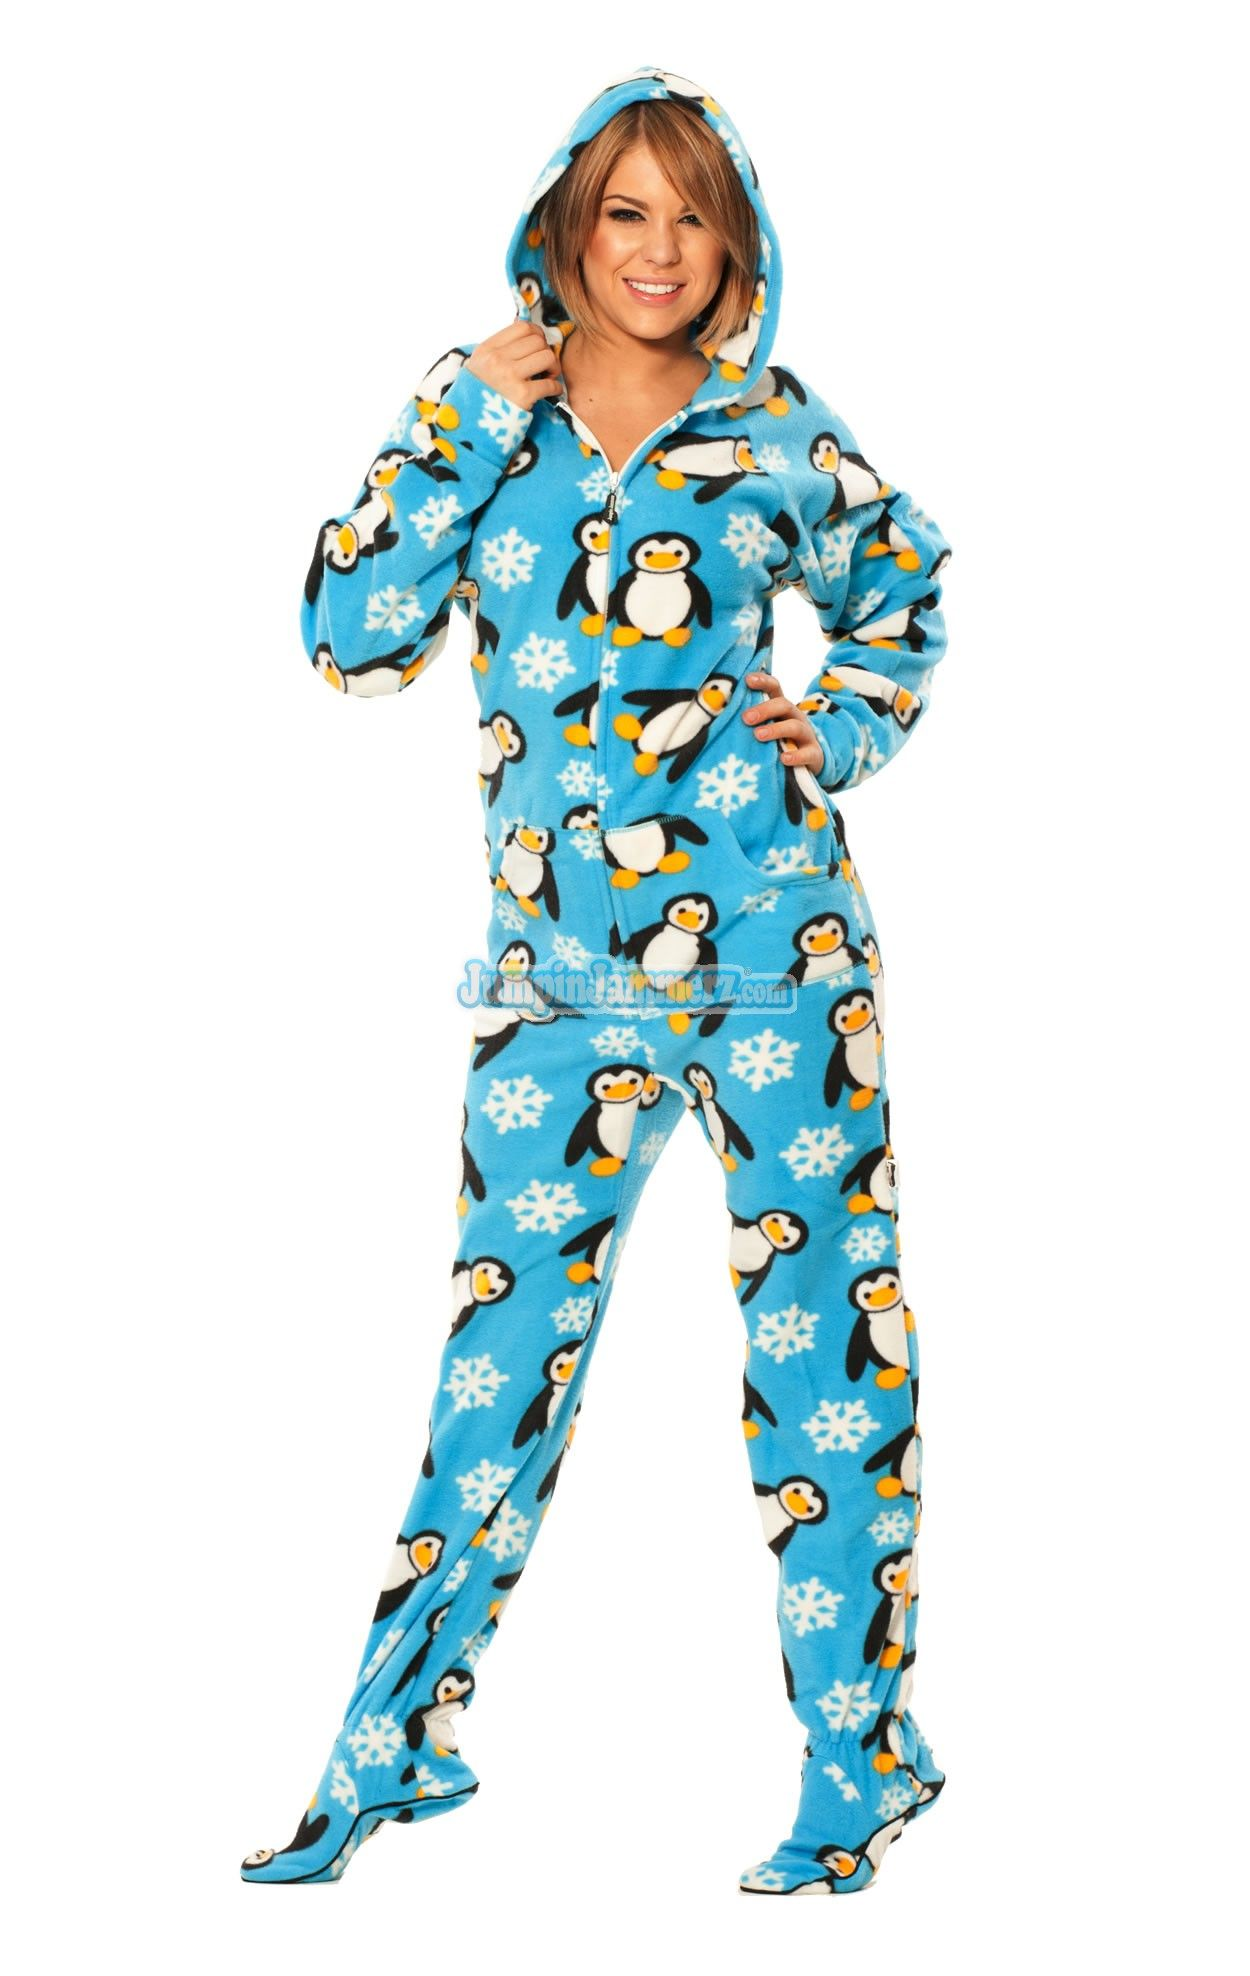 Penguins - Hooded Footed Pajamas - Pajamas Footie PJs Onesies One Piece Adult  Pajamas - JumpinJammerz.com baa3c2d77